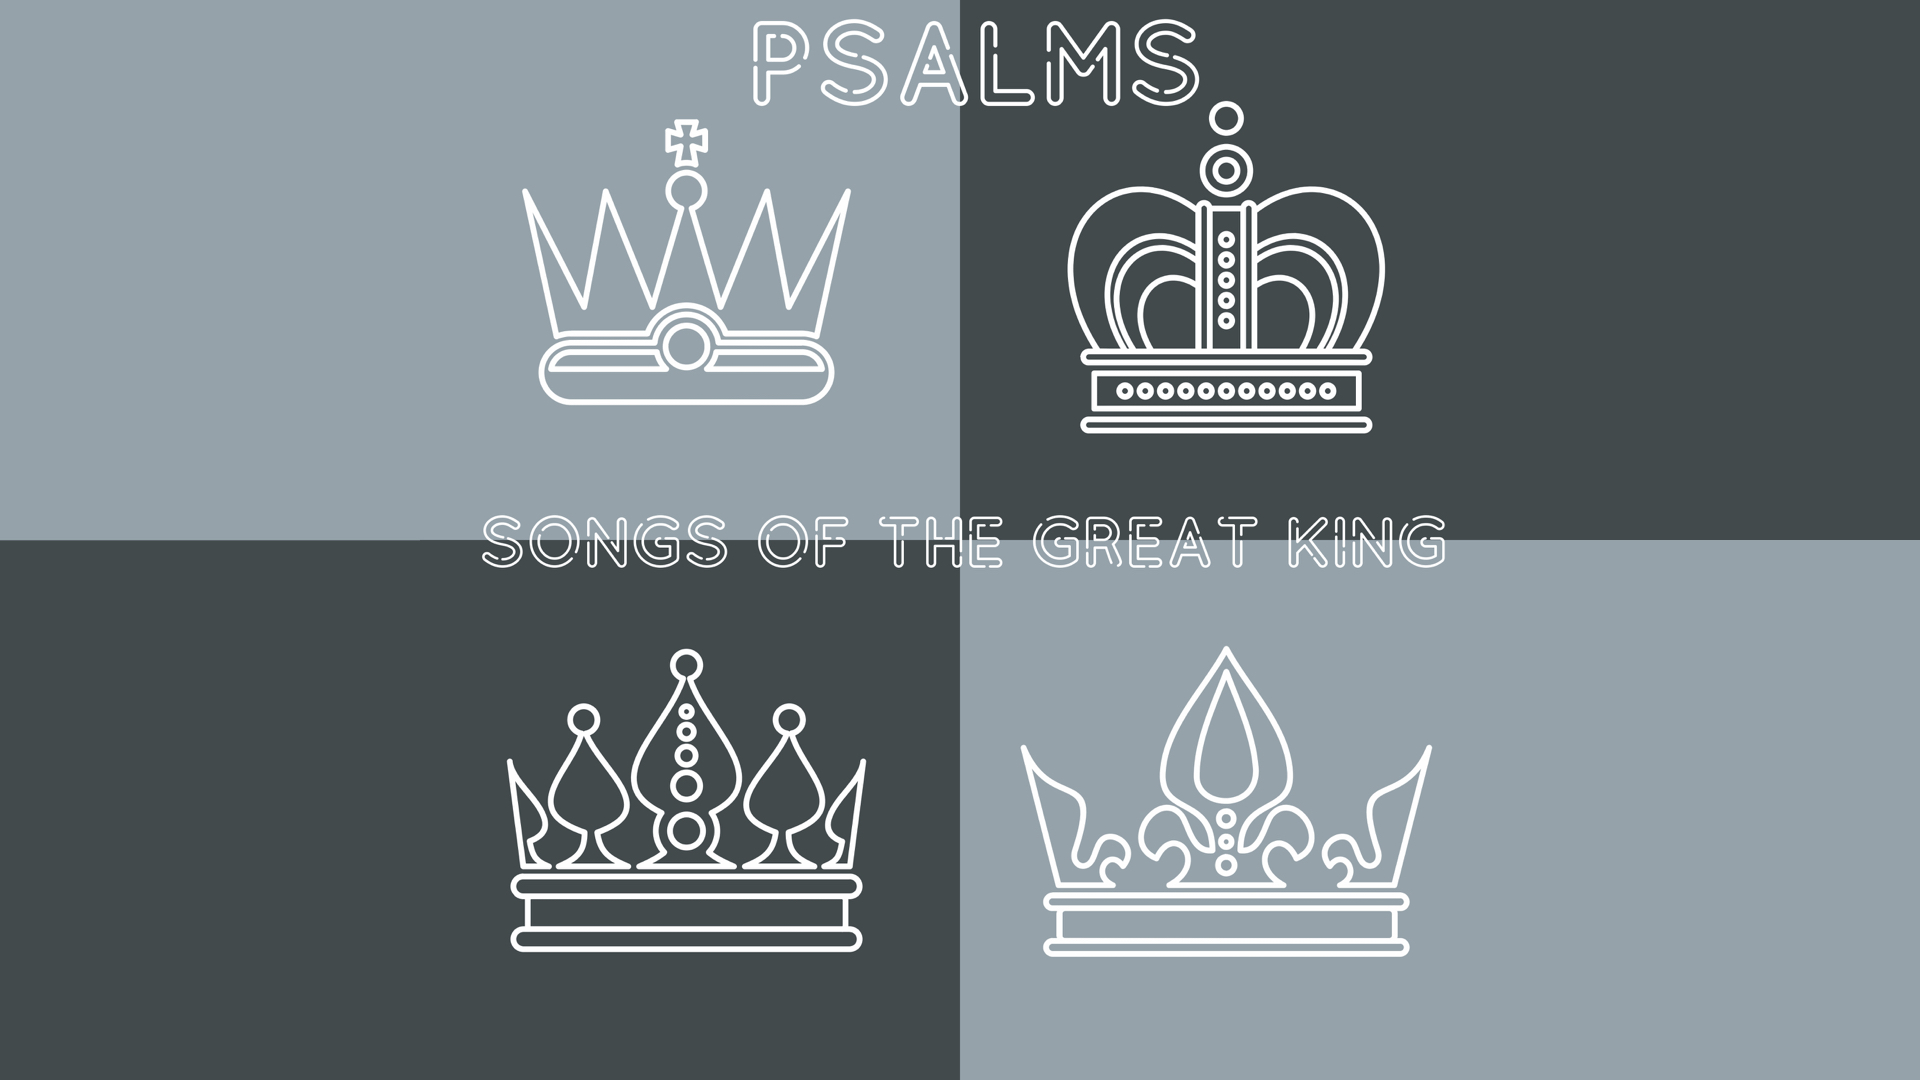 Psalms: Songs of the Great King